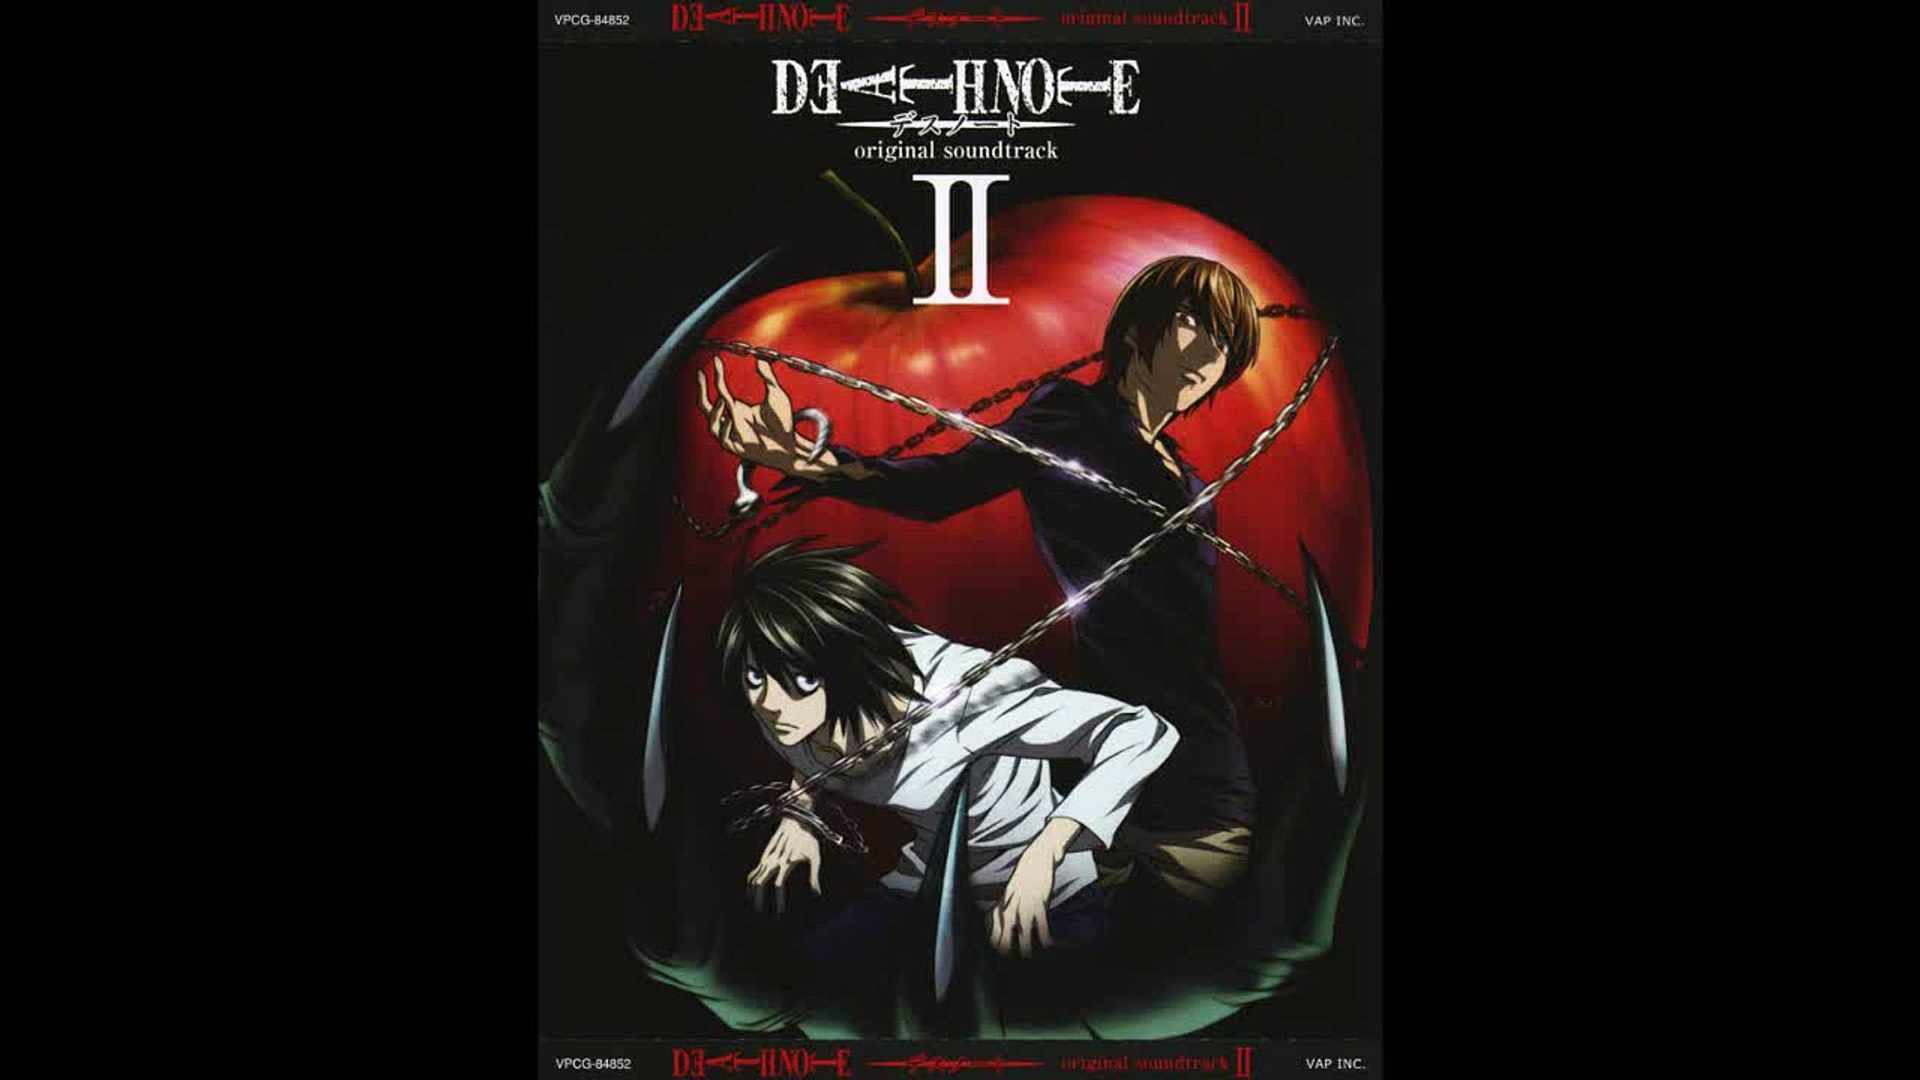 Death Note Original Soundtrack 2 - 15. Senritsu B